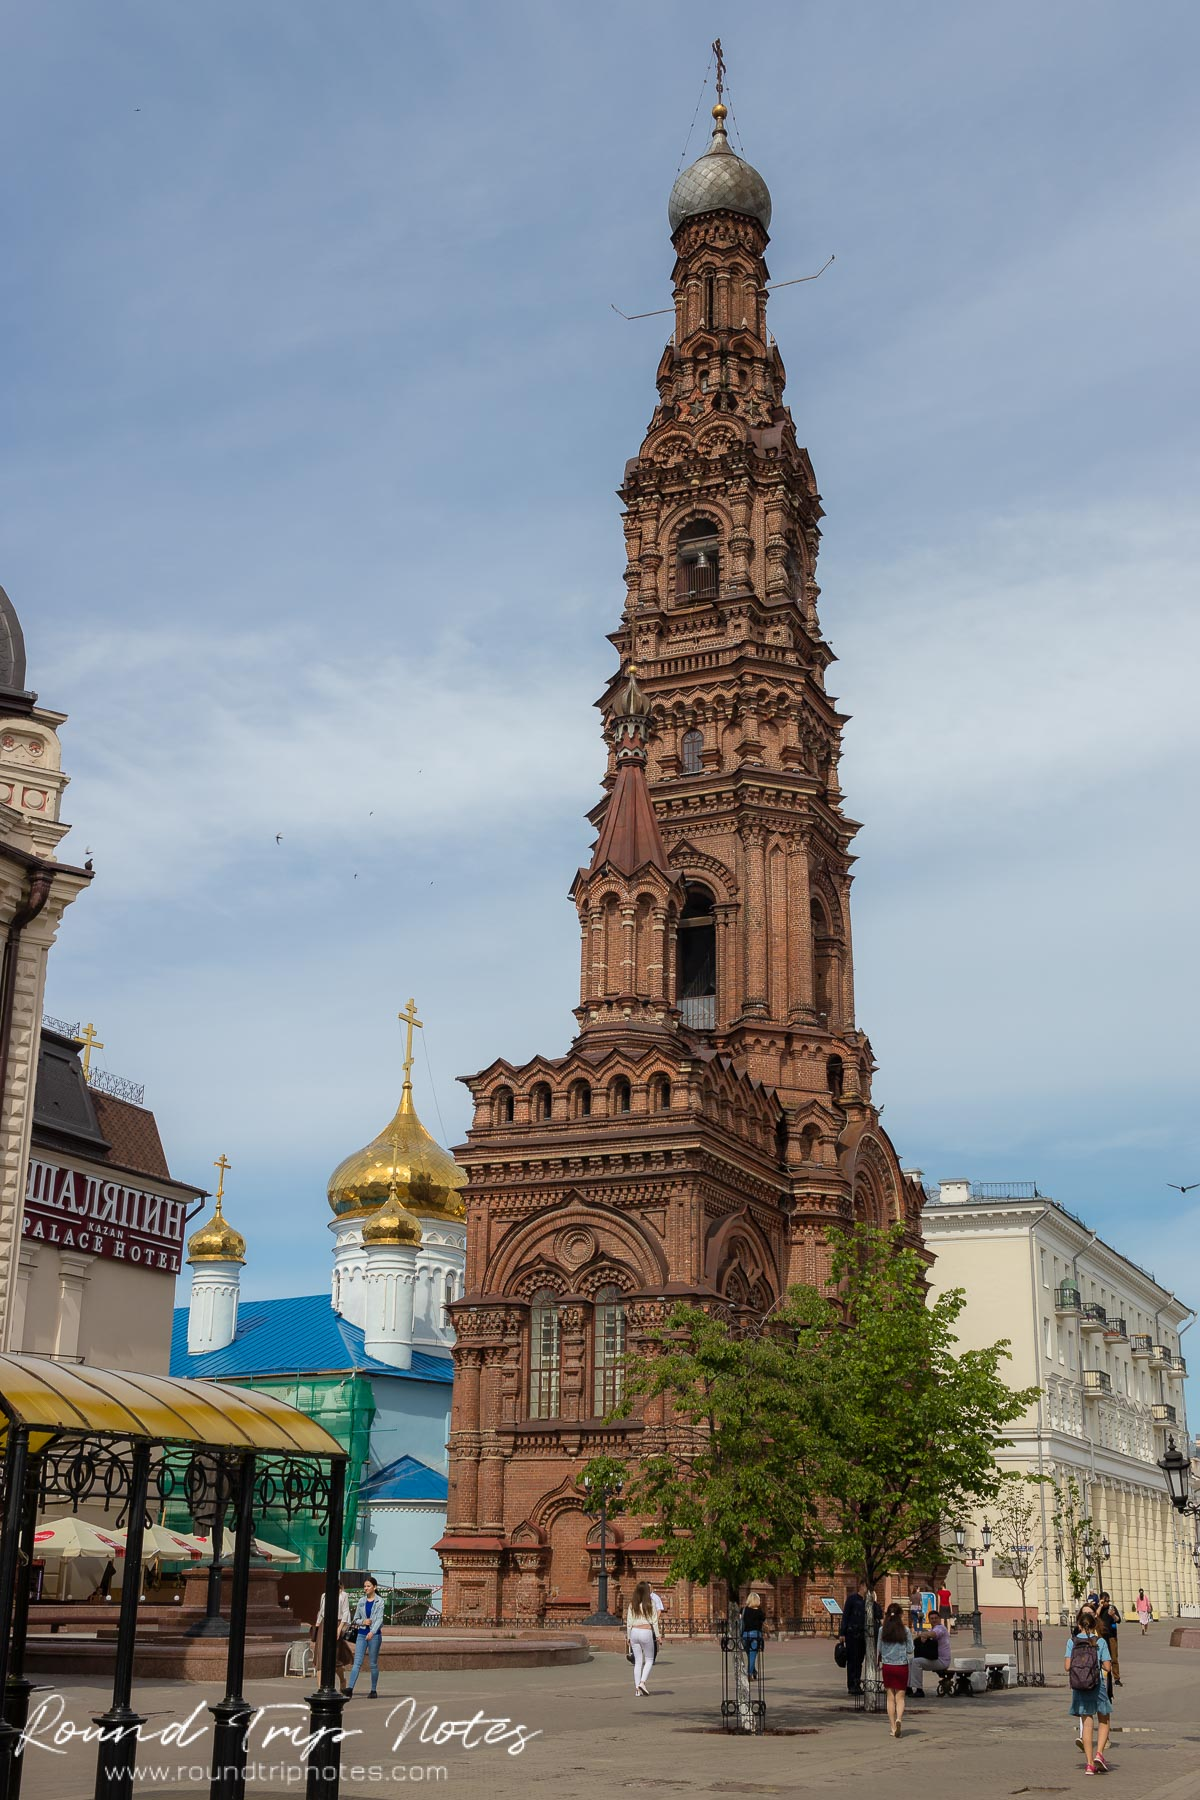 Epiphany Church and Belltower